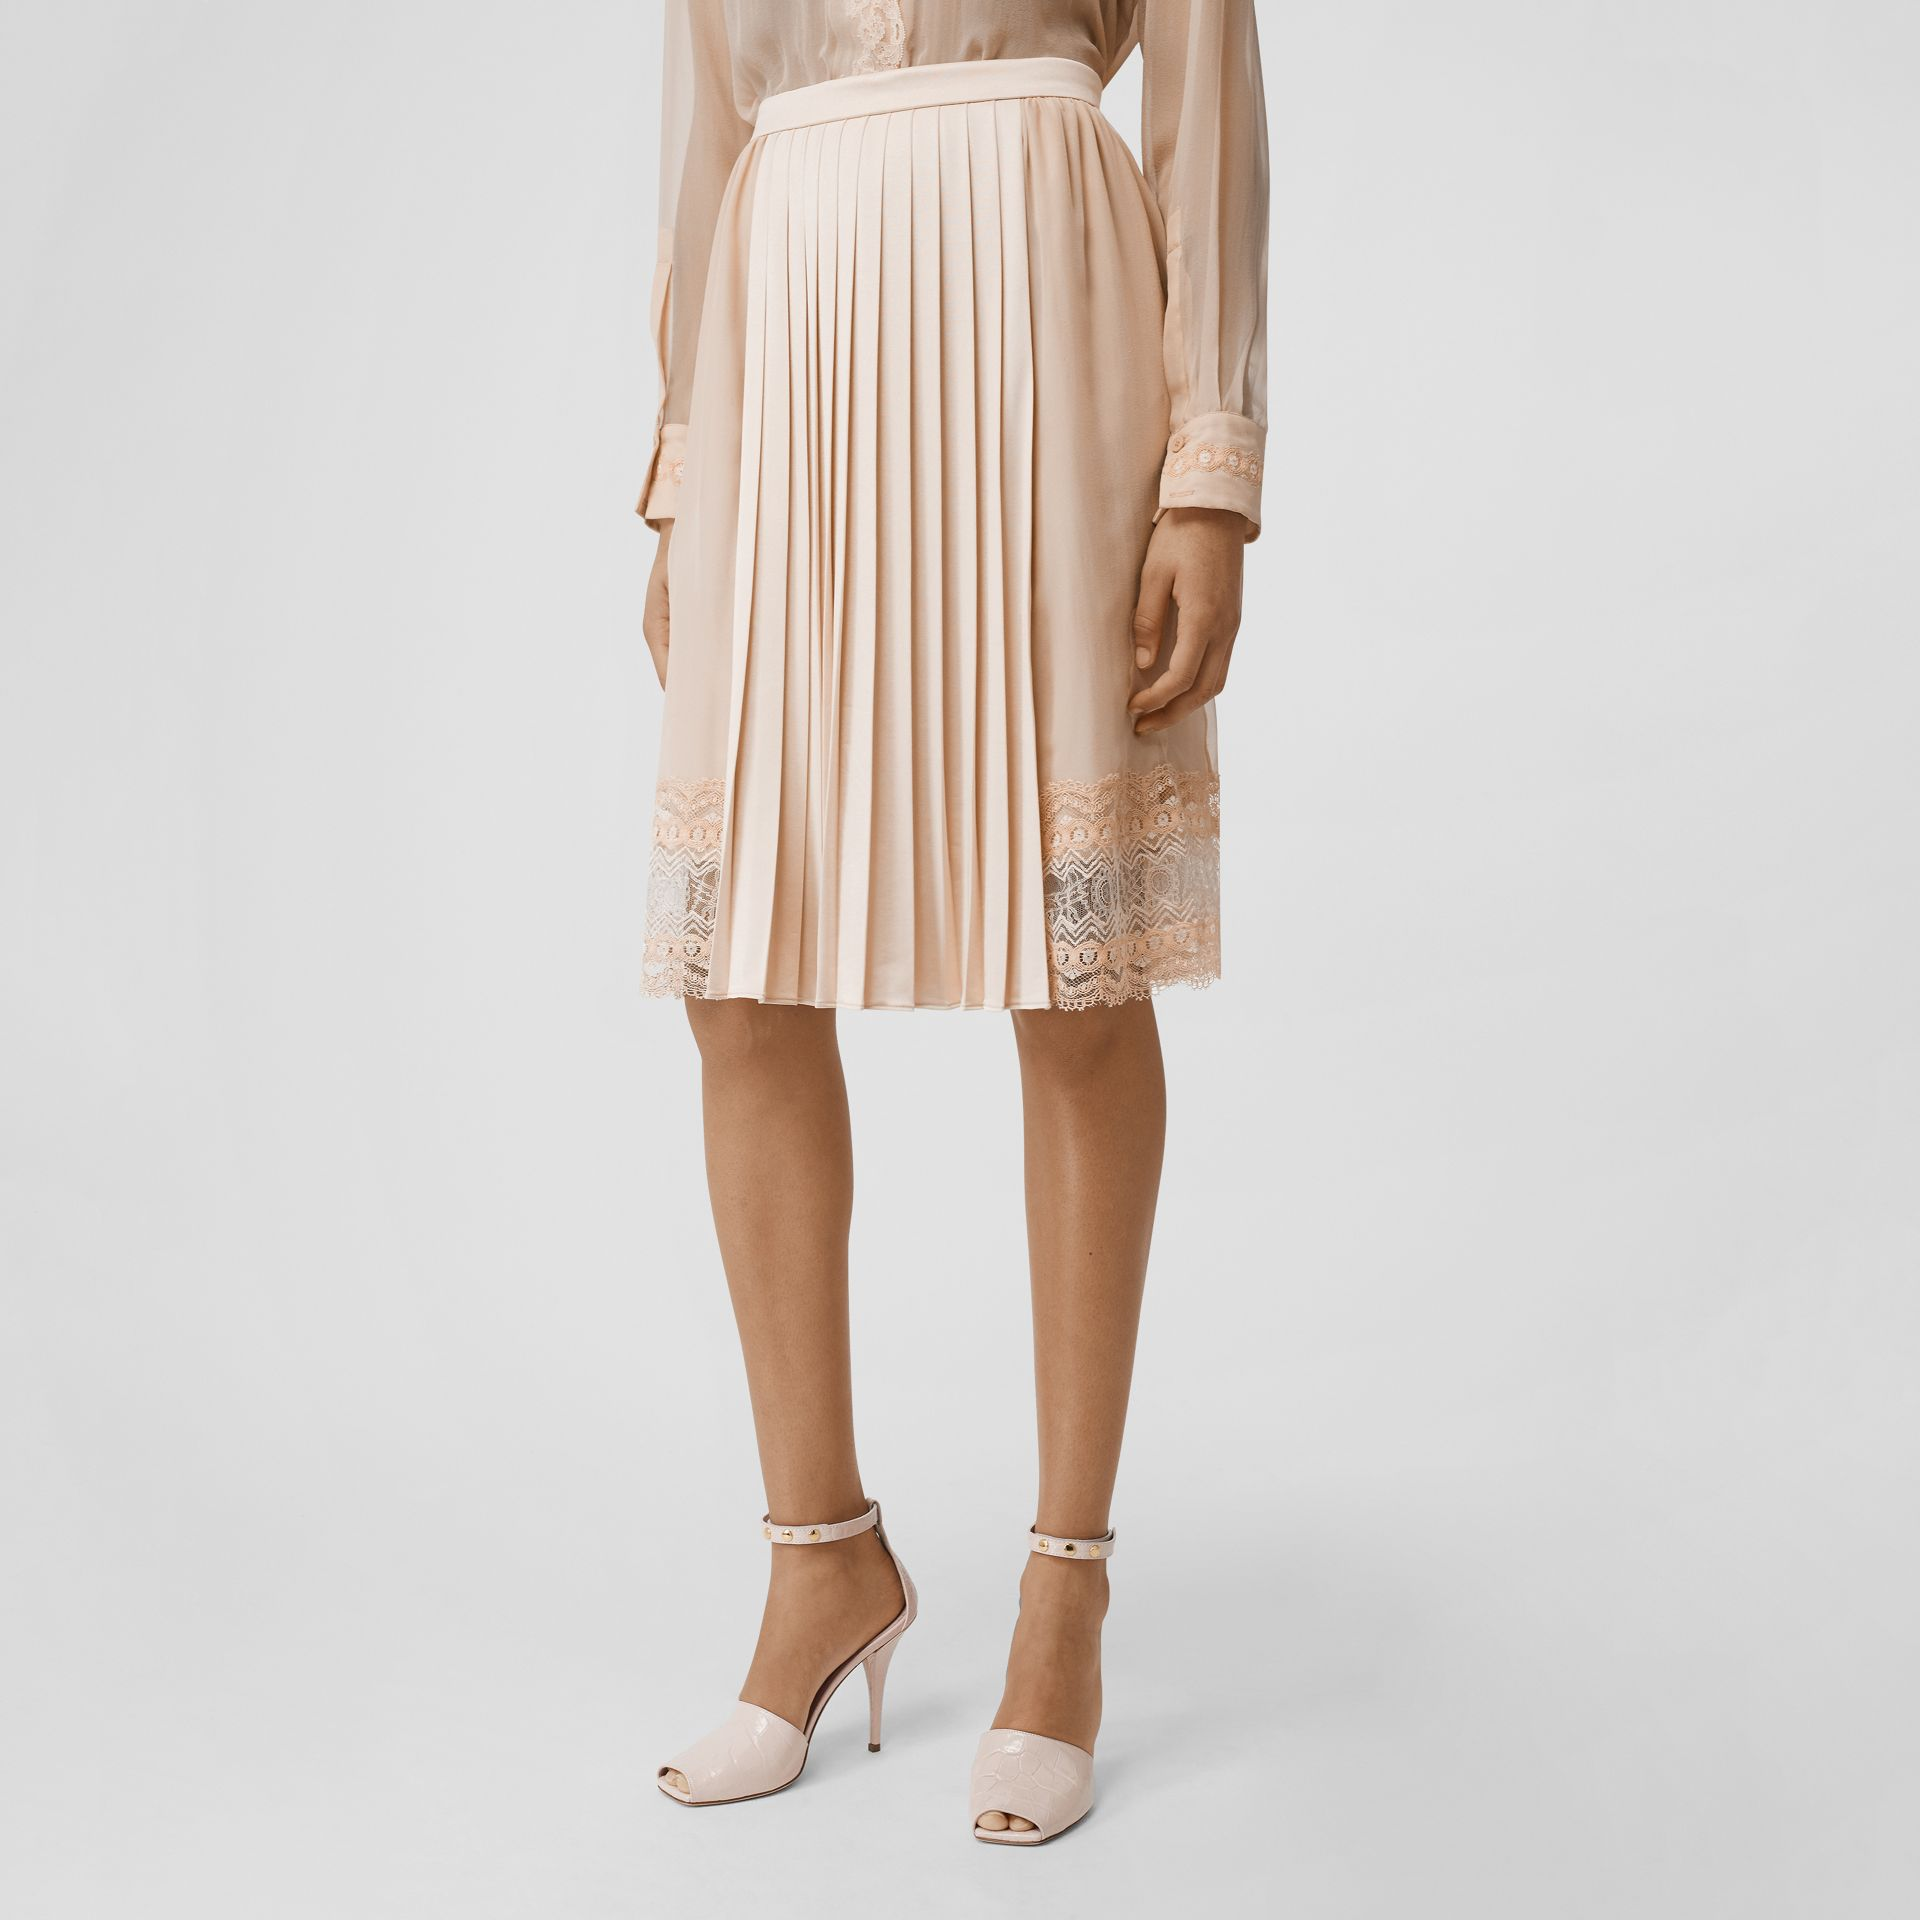 Lace Detail Silk Panel Pleated Skirt in Soft Peach - Women | Burberry Australia - gallery image 2